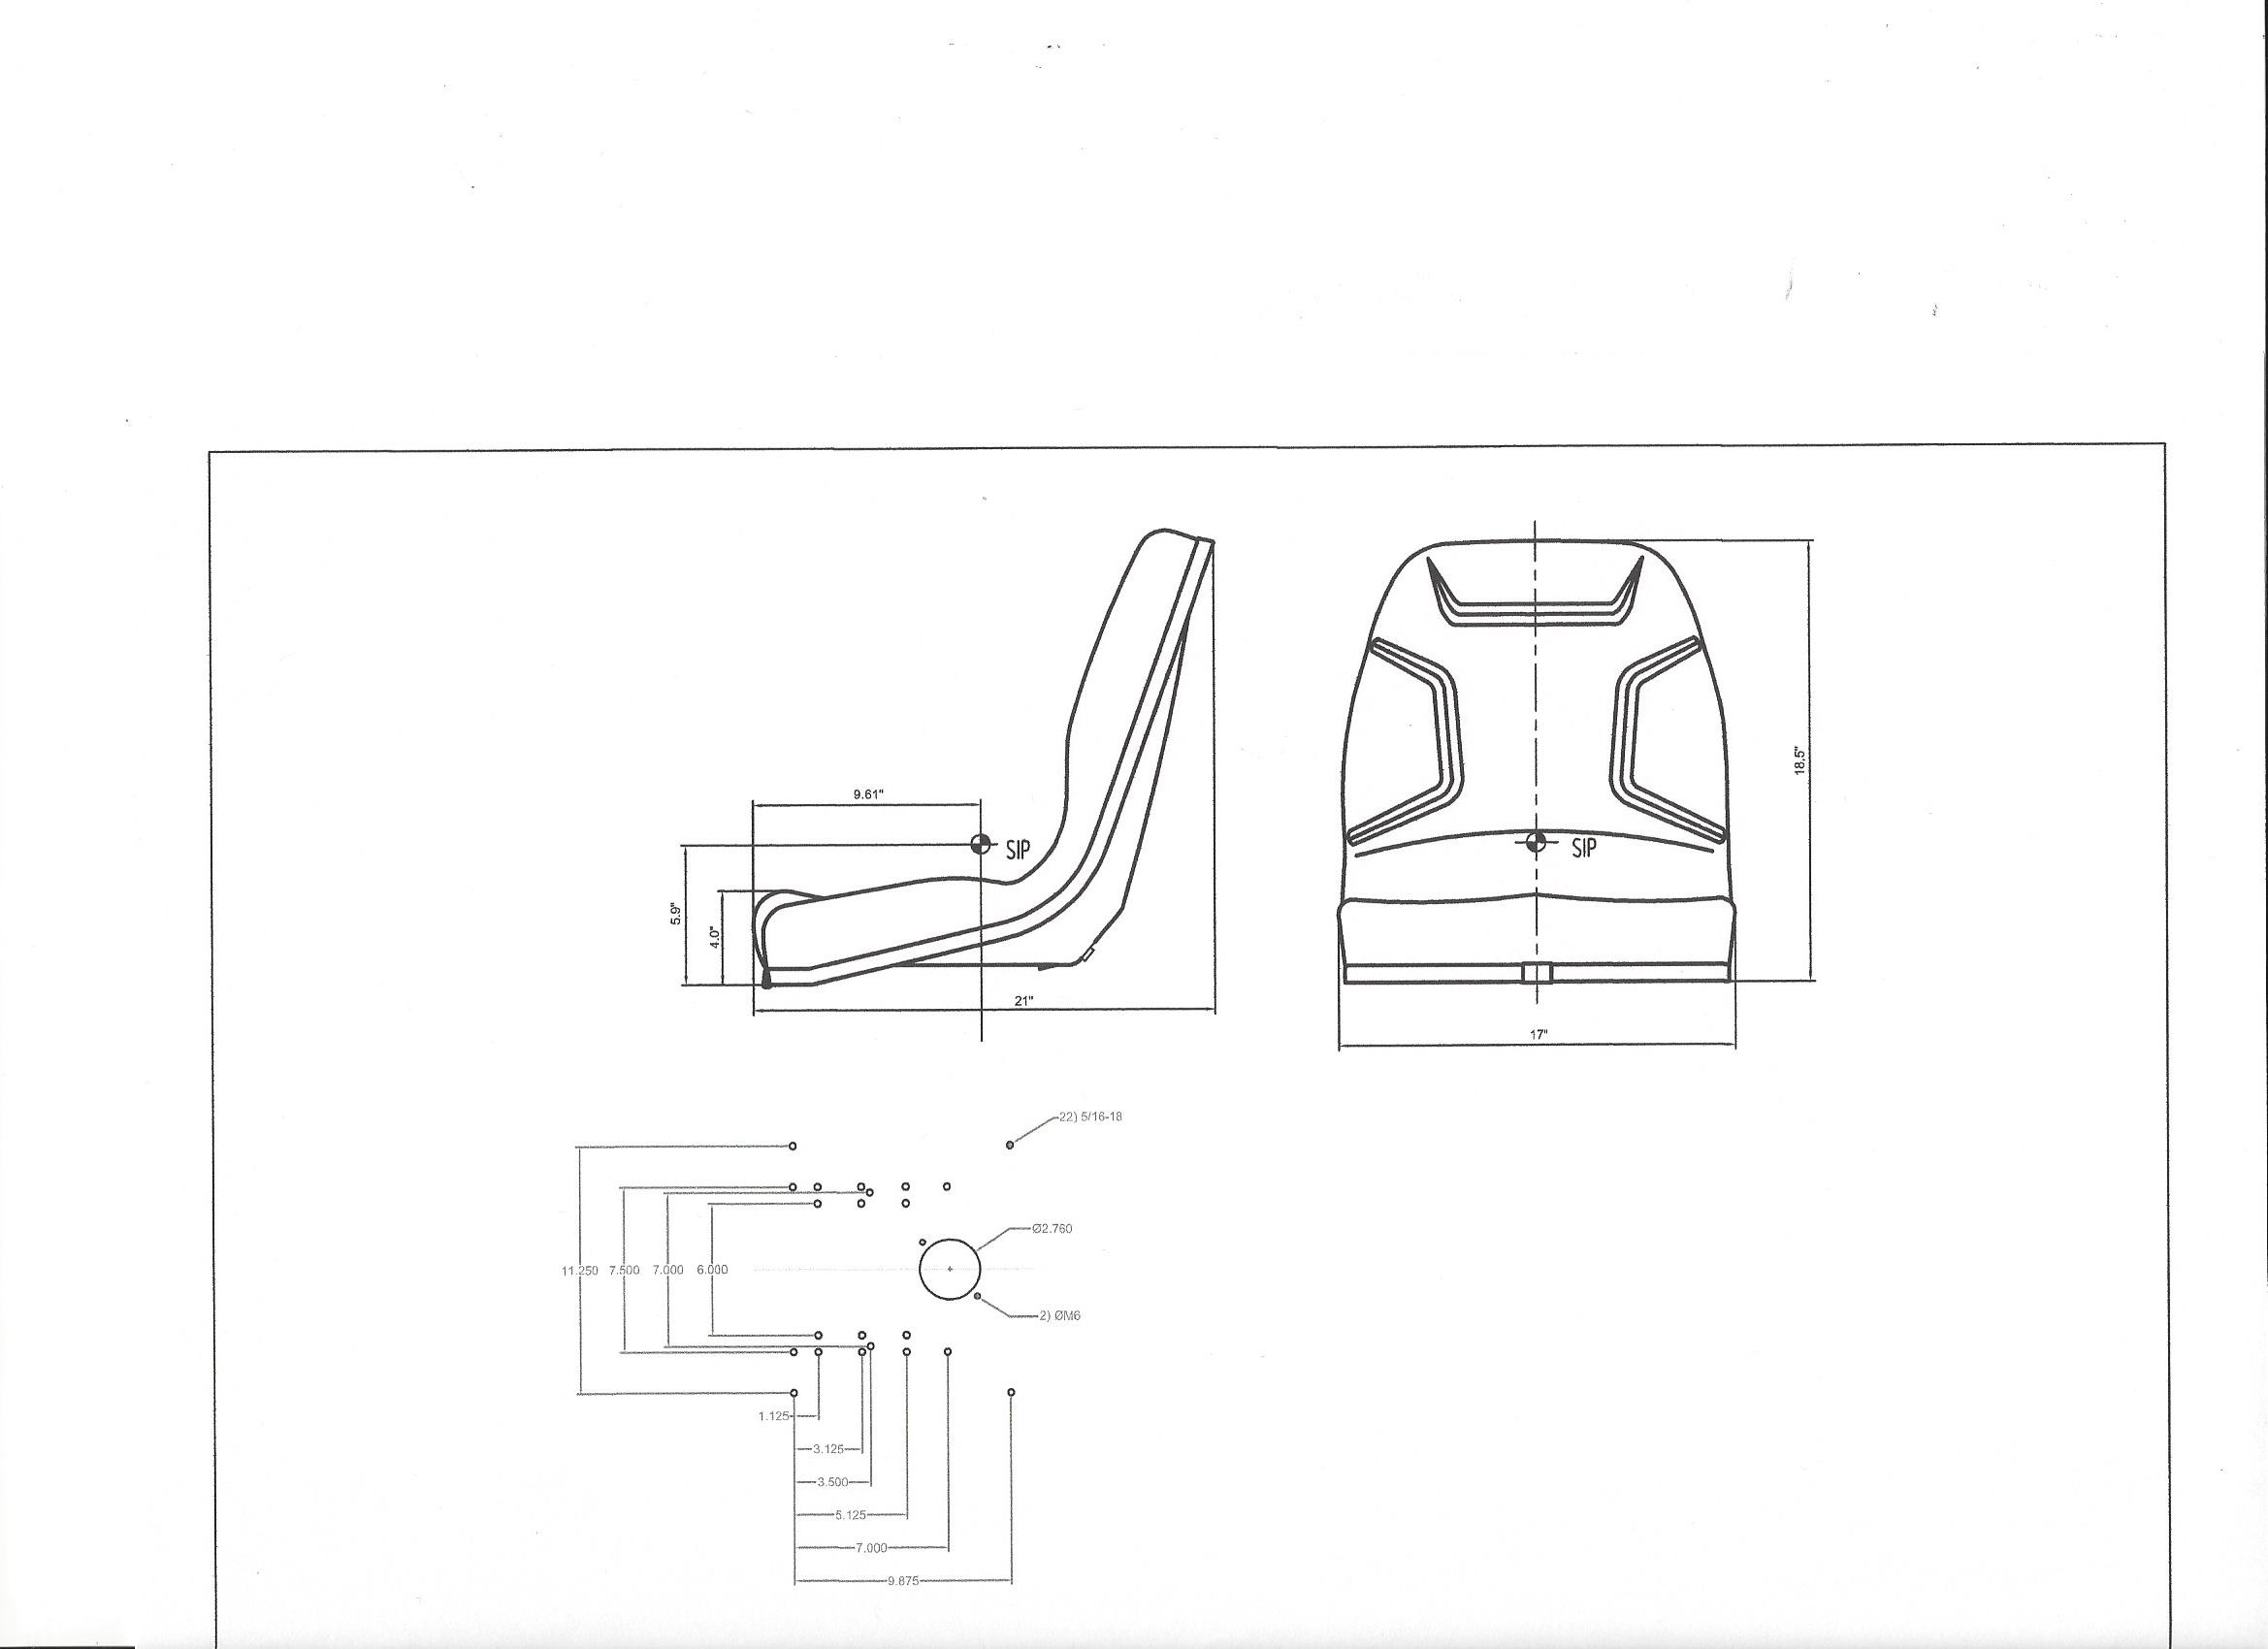 Kioti steering diagram intercooler diagram ford steering column diagram steering parts diagram 84 chevy steering column